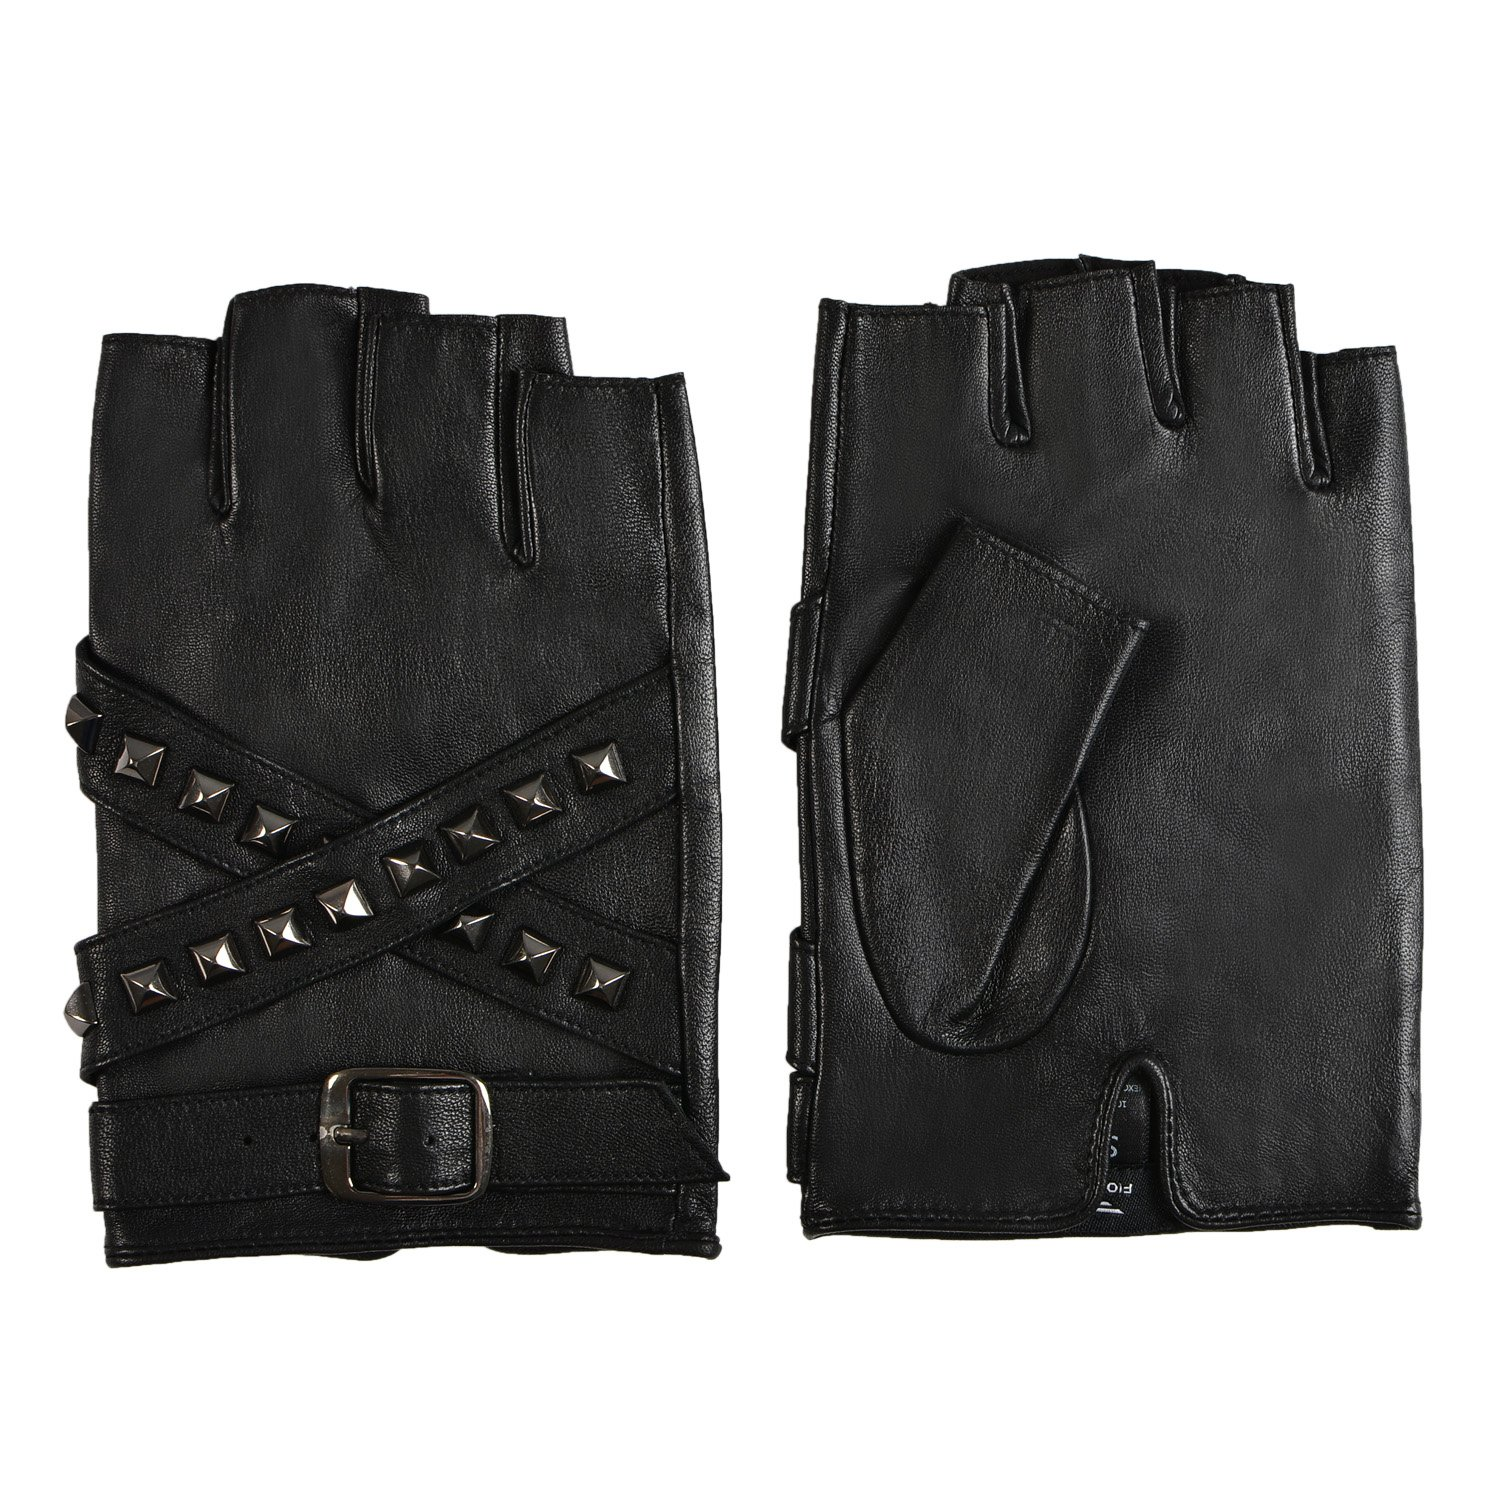 Fioretto 10% OFF Mens Womens Driving Leather Gloves Harley Fingerless Gloves Outdoor Italian Genuine Goatskin Leather Half Finger Gloves Punk Rock Style with Rivets Unlined (M/L, Black)